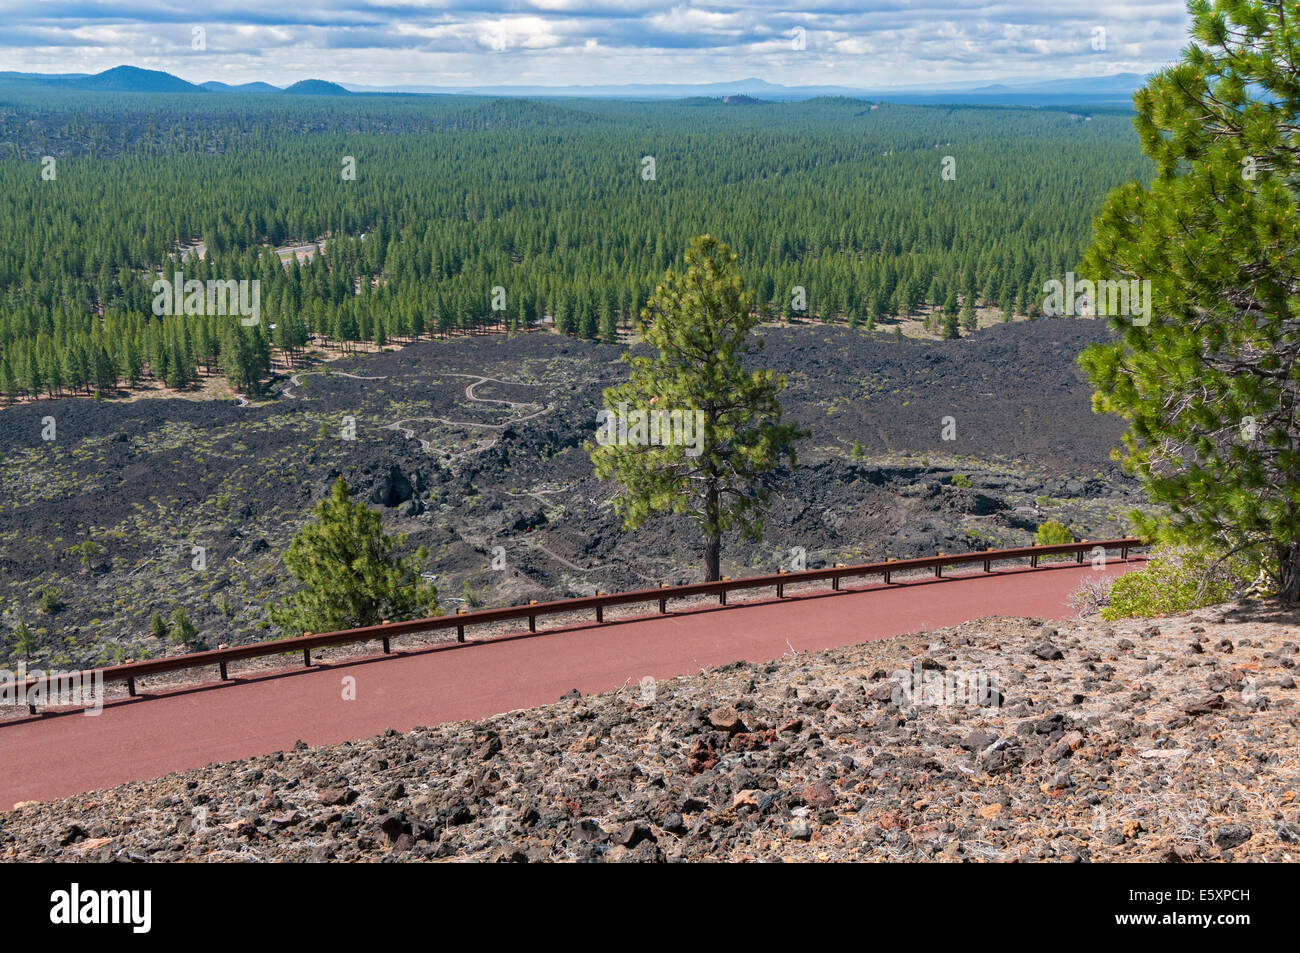 Oregon, Newberry National Volcanic Monument, Lava Butte, summit road, lava field view from crater rim trail - Stock Image